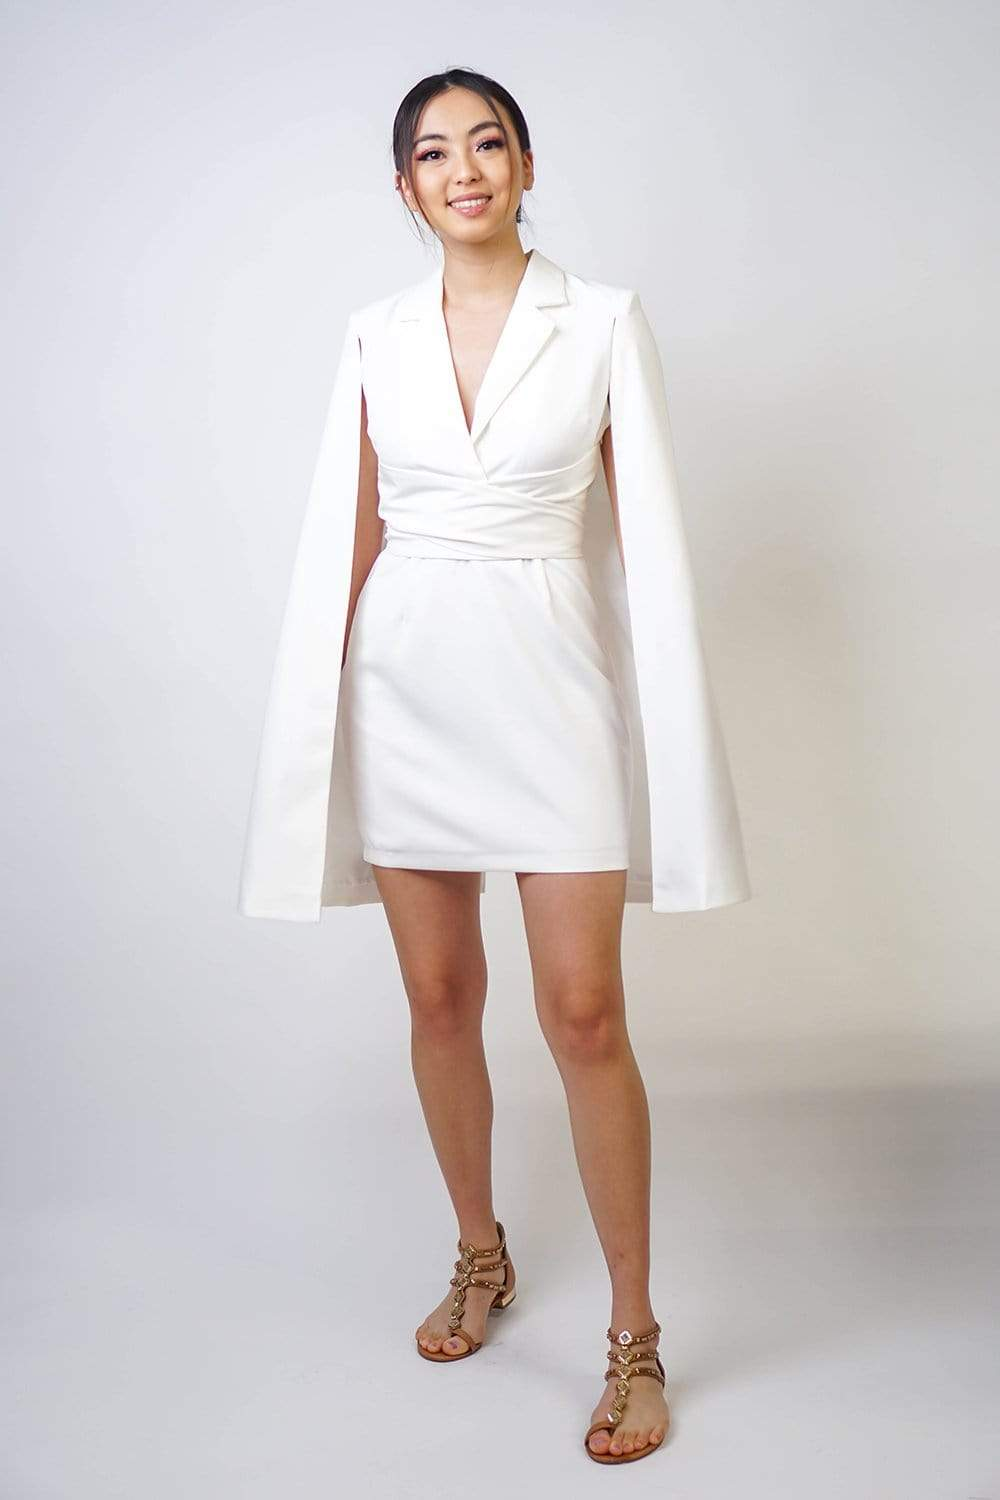 V-neck notch collar tailored white dress with a sewn on cape that will add some drama to your look. Slightly padded at the shoulders with a wrapped waistline to accentuate the figure.